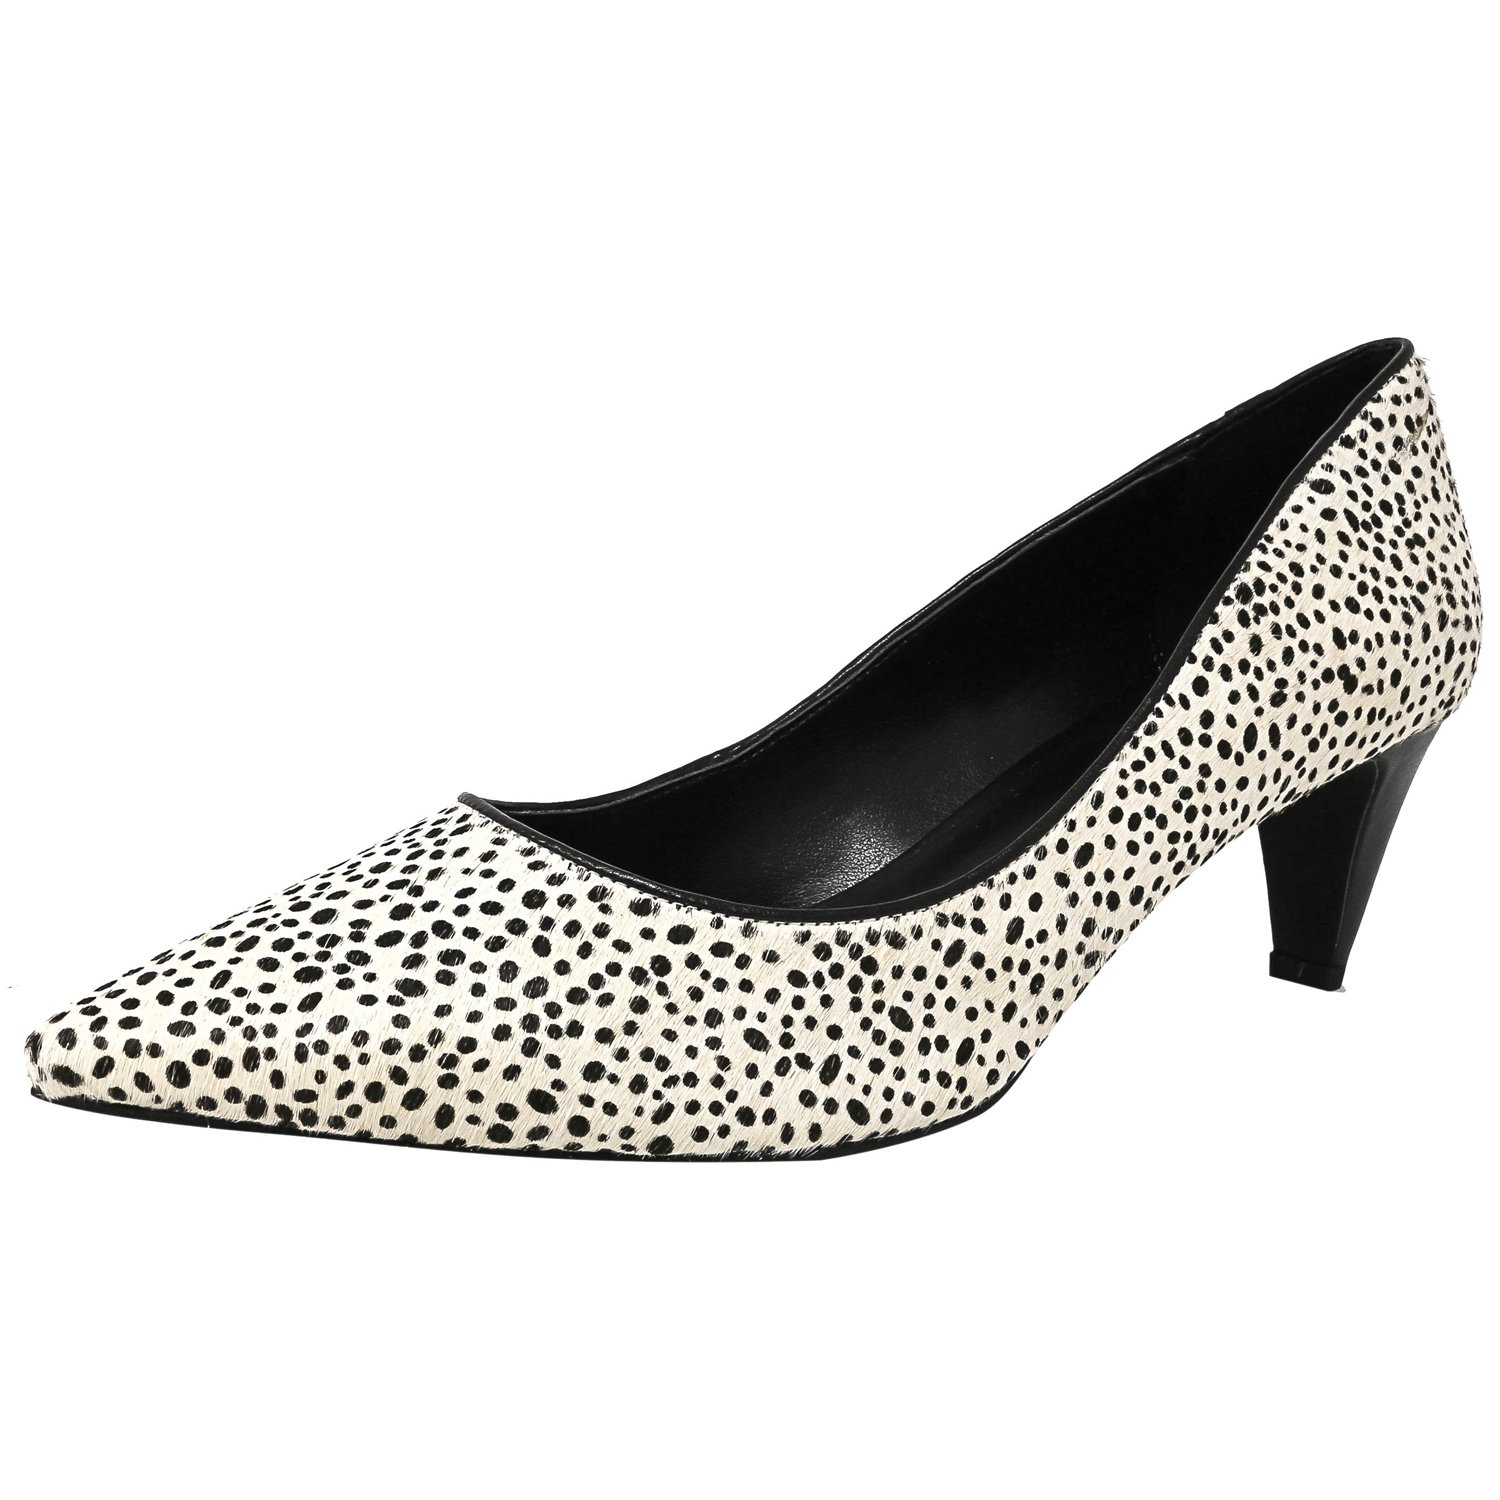 Lori Goldstein Women's Joan Dalmation Ankle-High Leather Pump - 9.5M